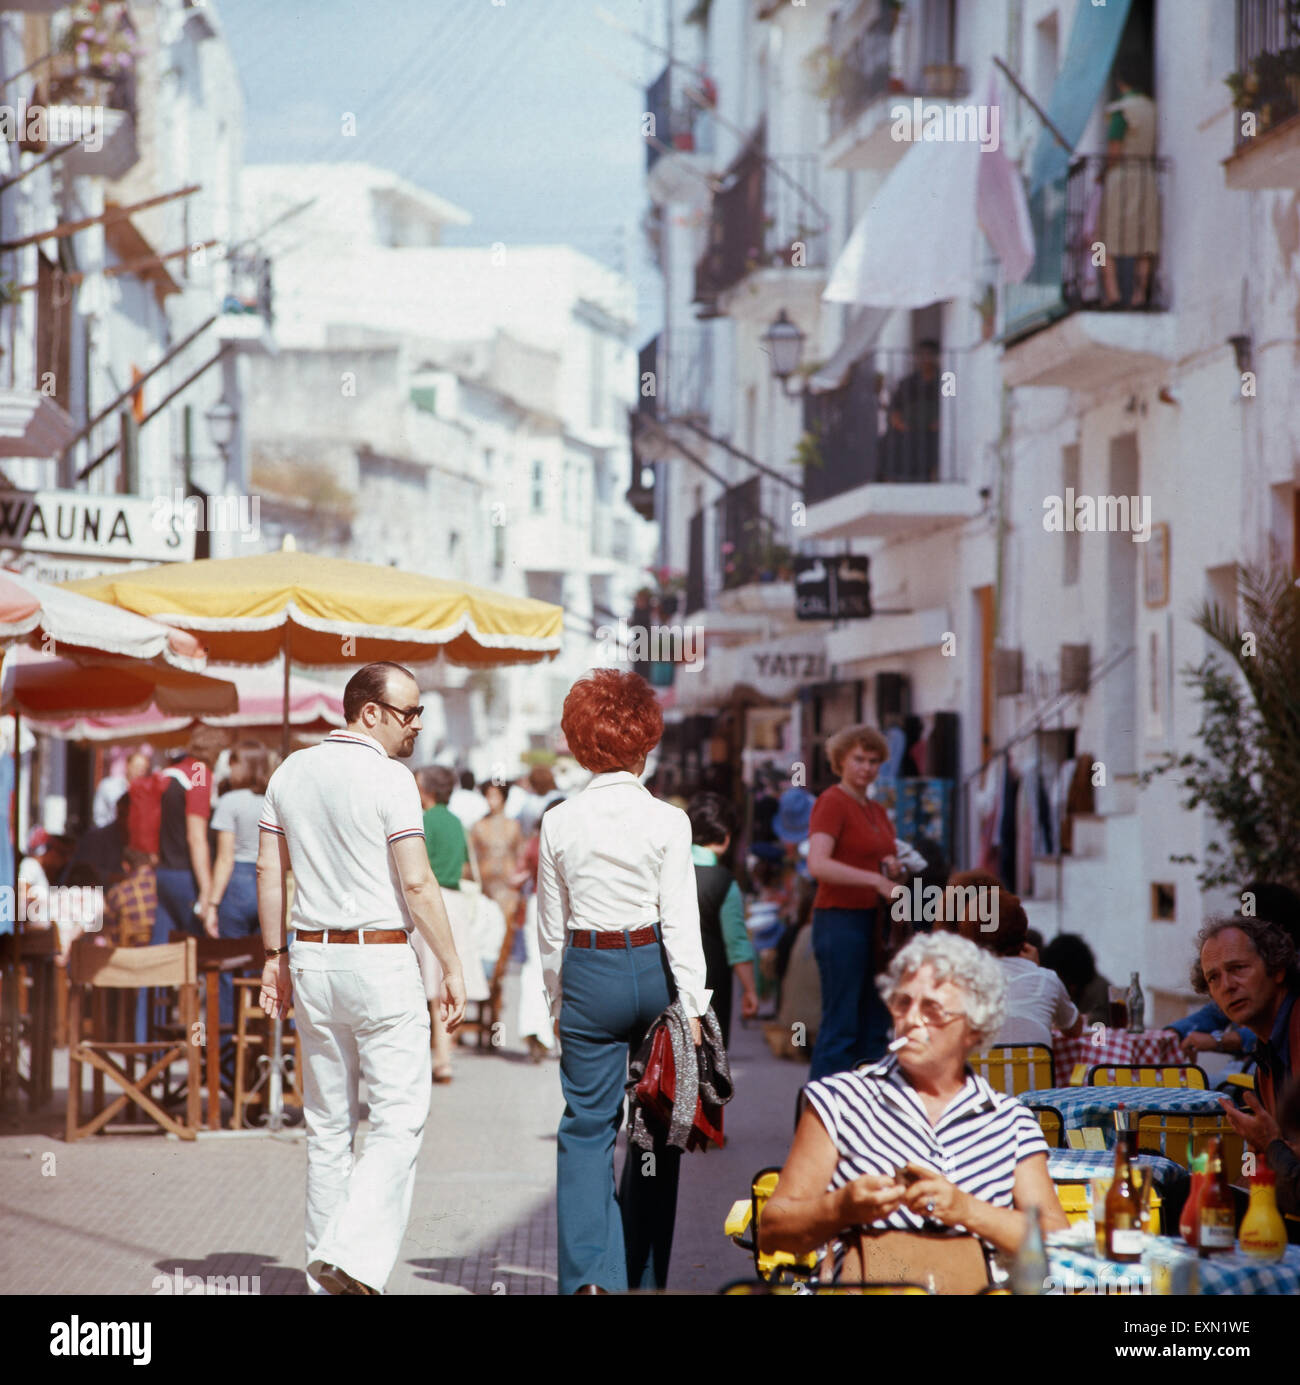 sommerurlaub in ibiza stadt ibiza 1976 summer vacation in the city stock photo 85285018 alamy. Black Bedroom Furniture Sets. Home Design Ideas